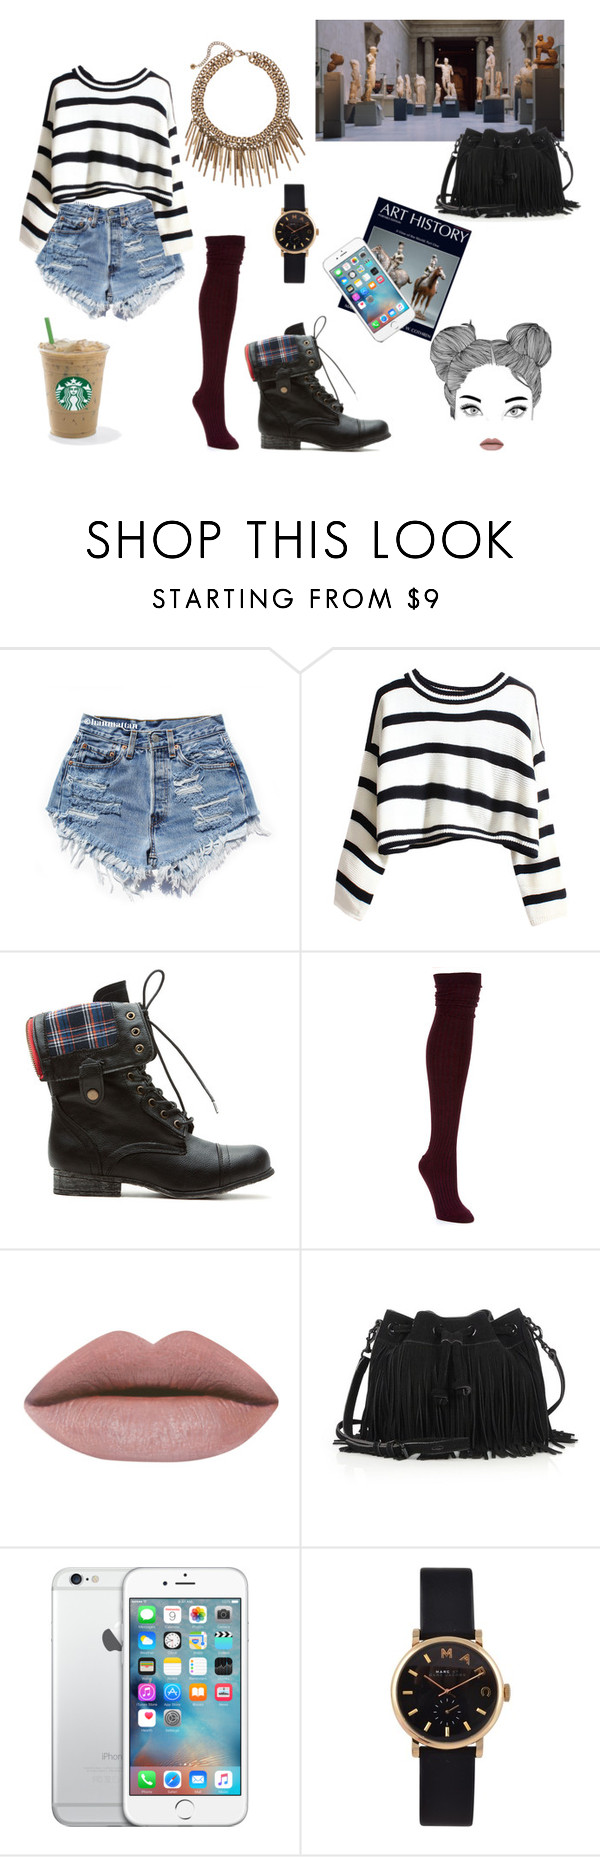 """""""Casual 1"""" by ohlala423 ❤ liked on Polyvore featuring Ravel, Hue, Rebecca Minkoff and Marc by Marc Jacobs"""